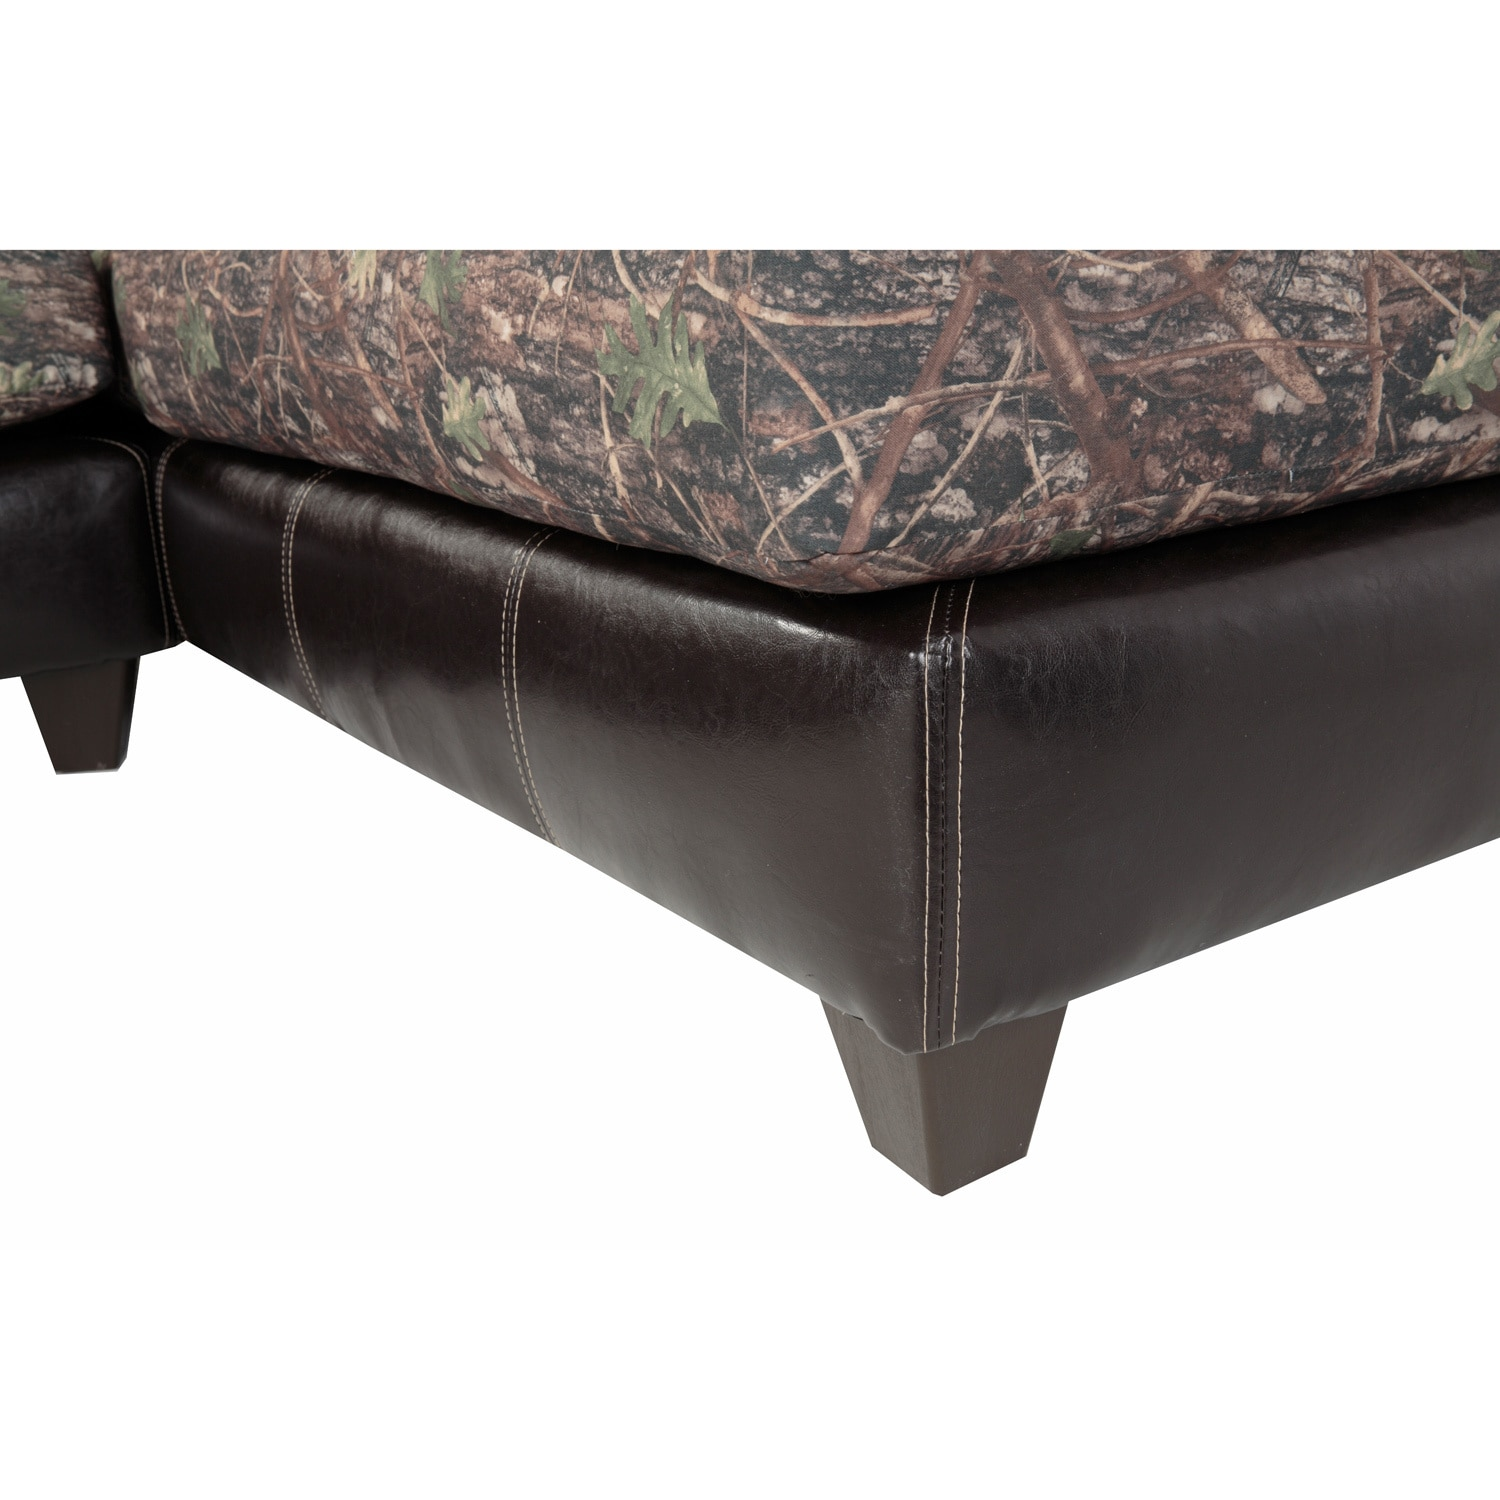 Camouflage Sectional Sofa Free Shipping Today 9230427